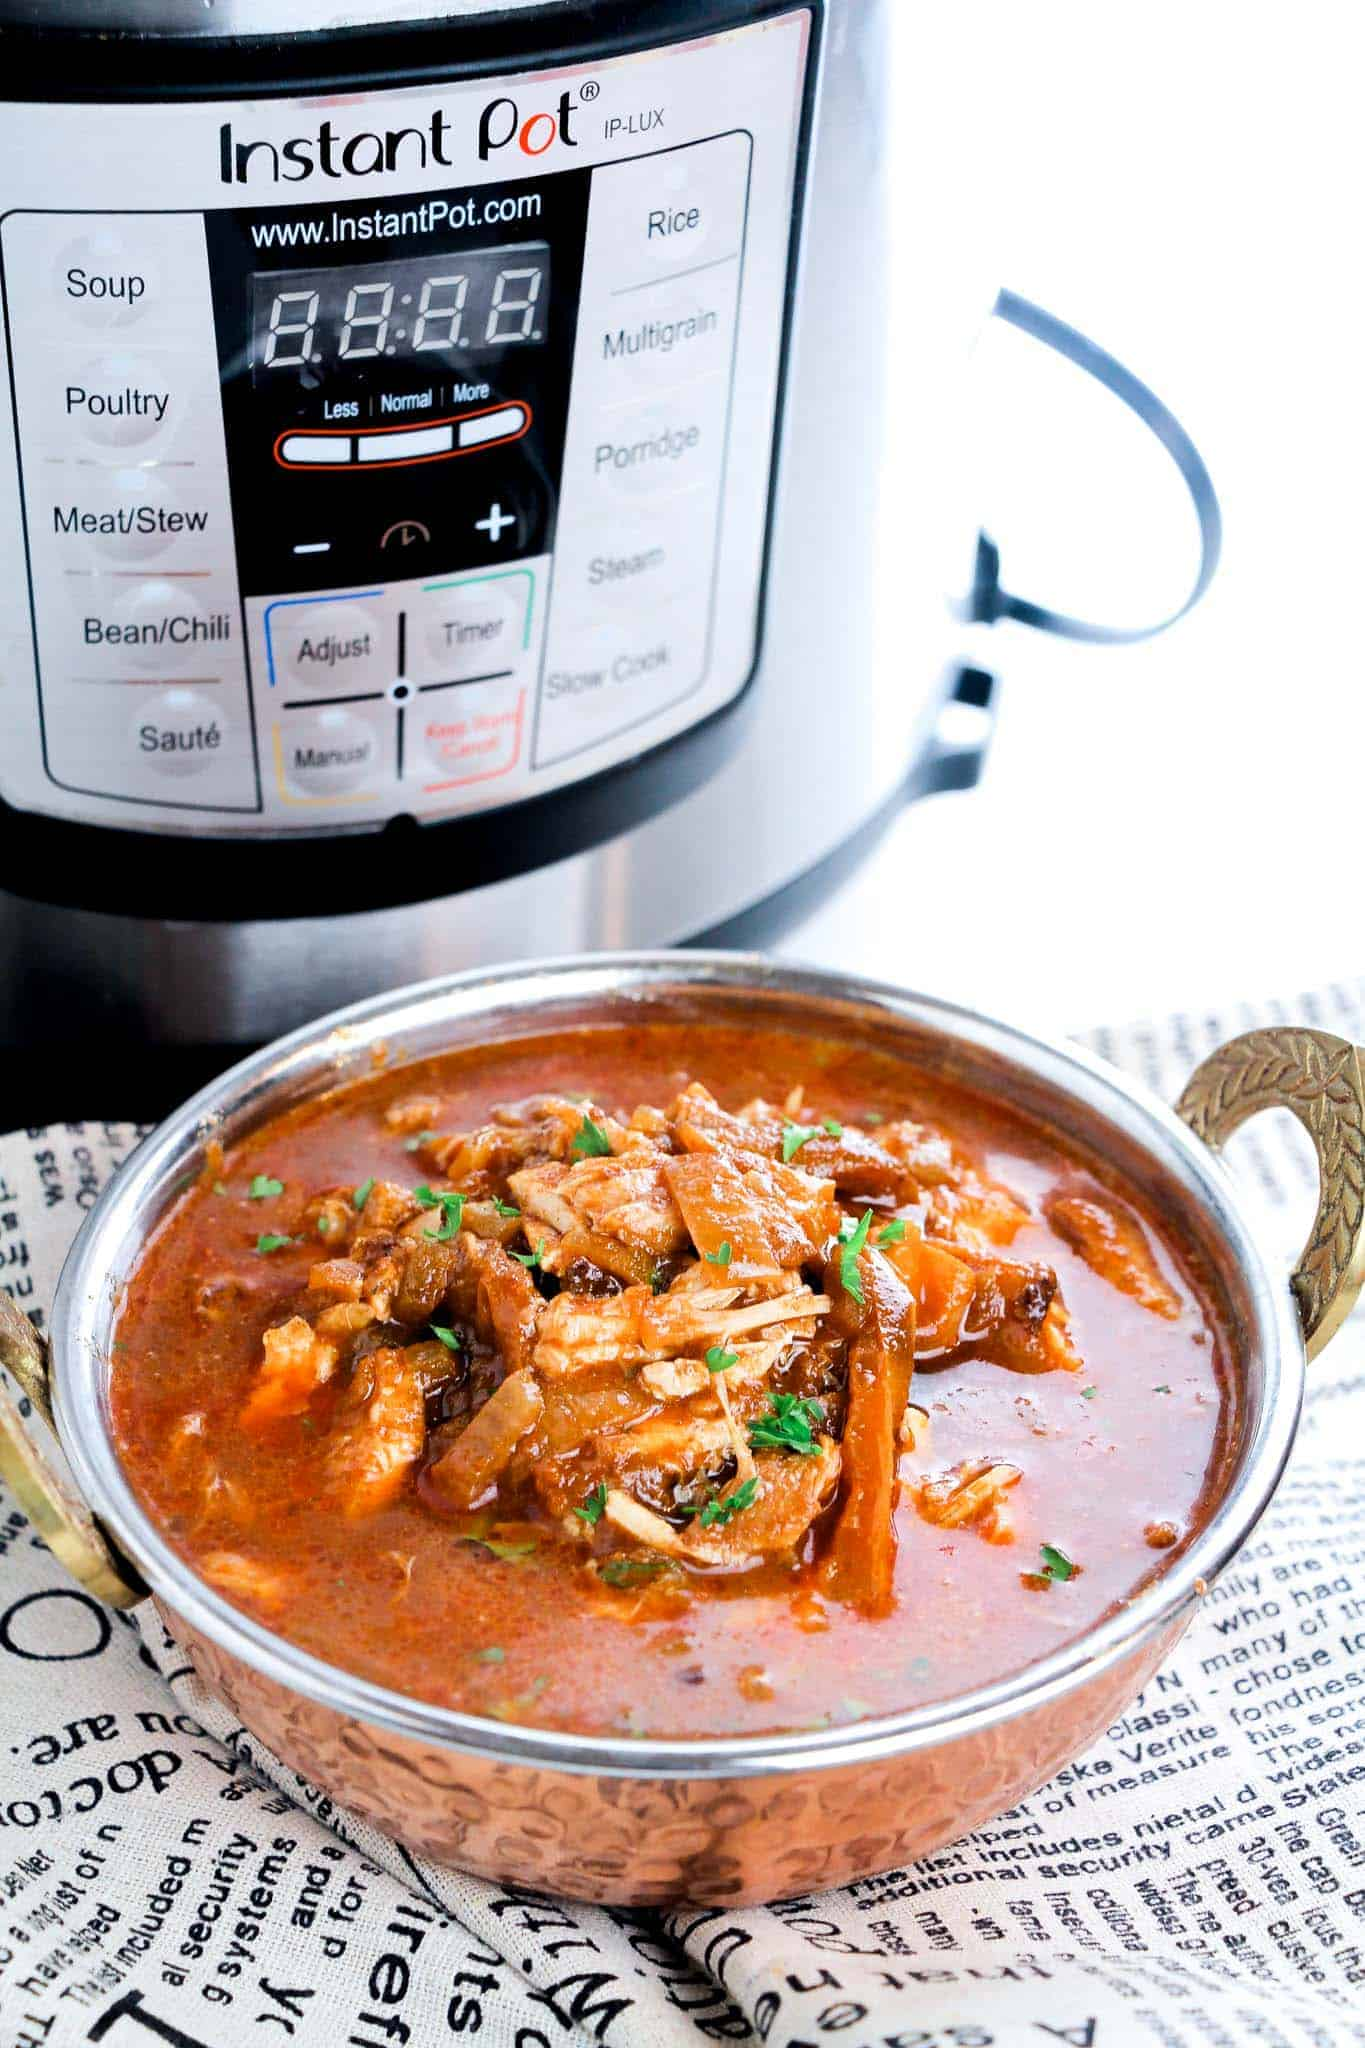 This is an Easy Instant Pot Chicken Stew Recipe the whole family will love!